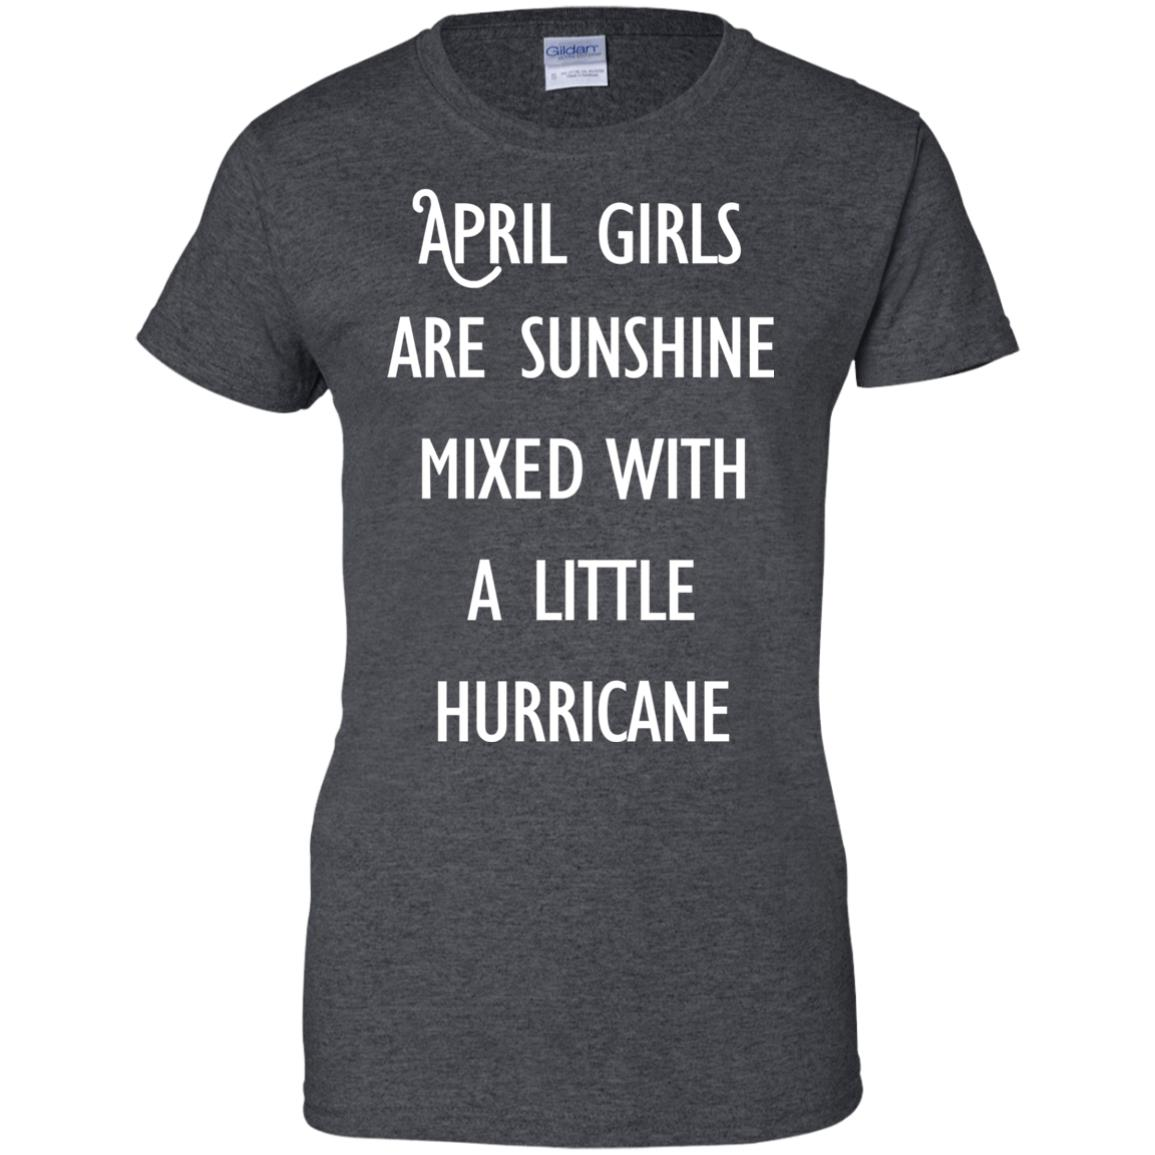 image 205 - April Girls Are Sunshine Mixed With A Little Hurricane T-shirt